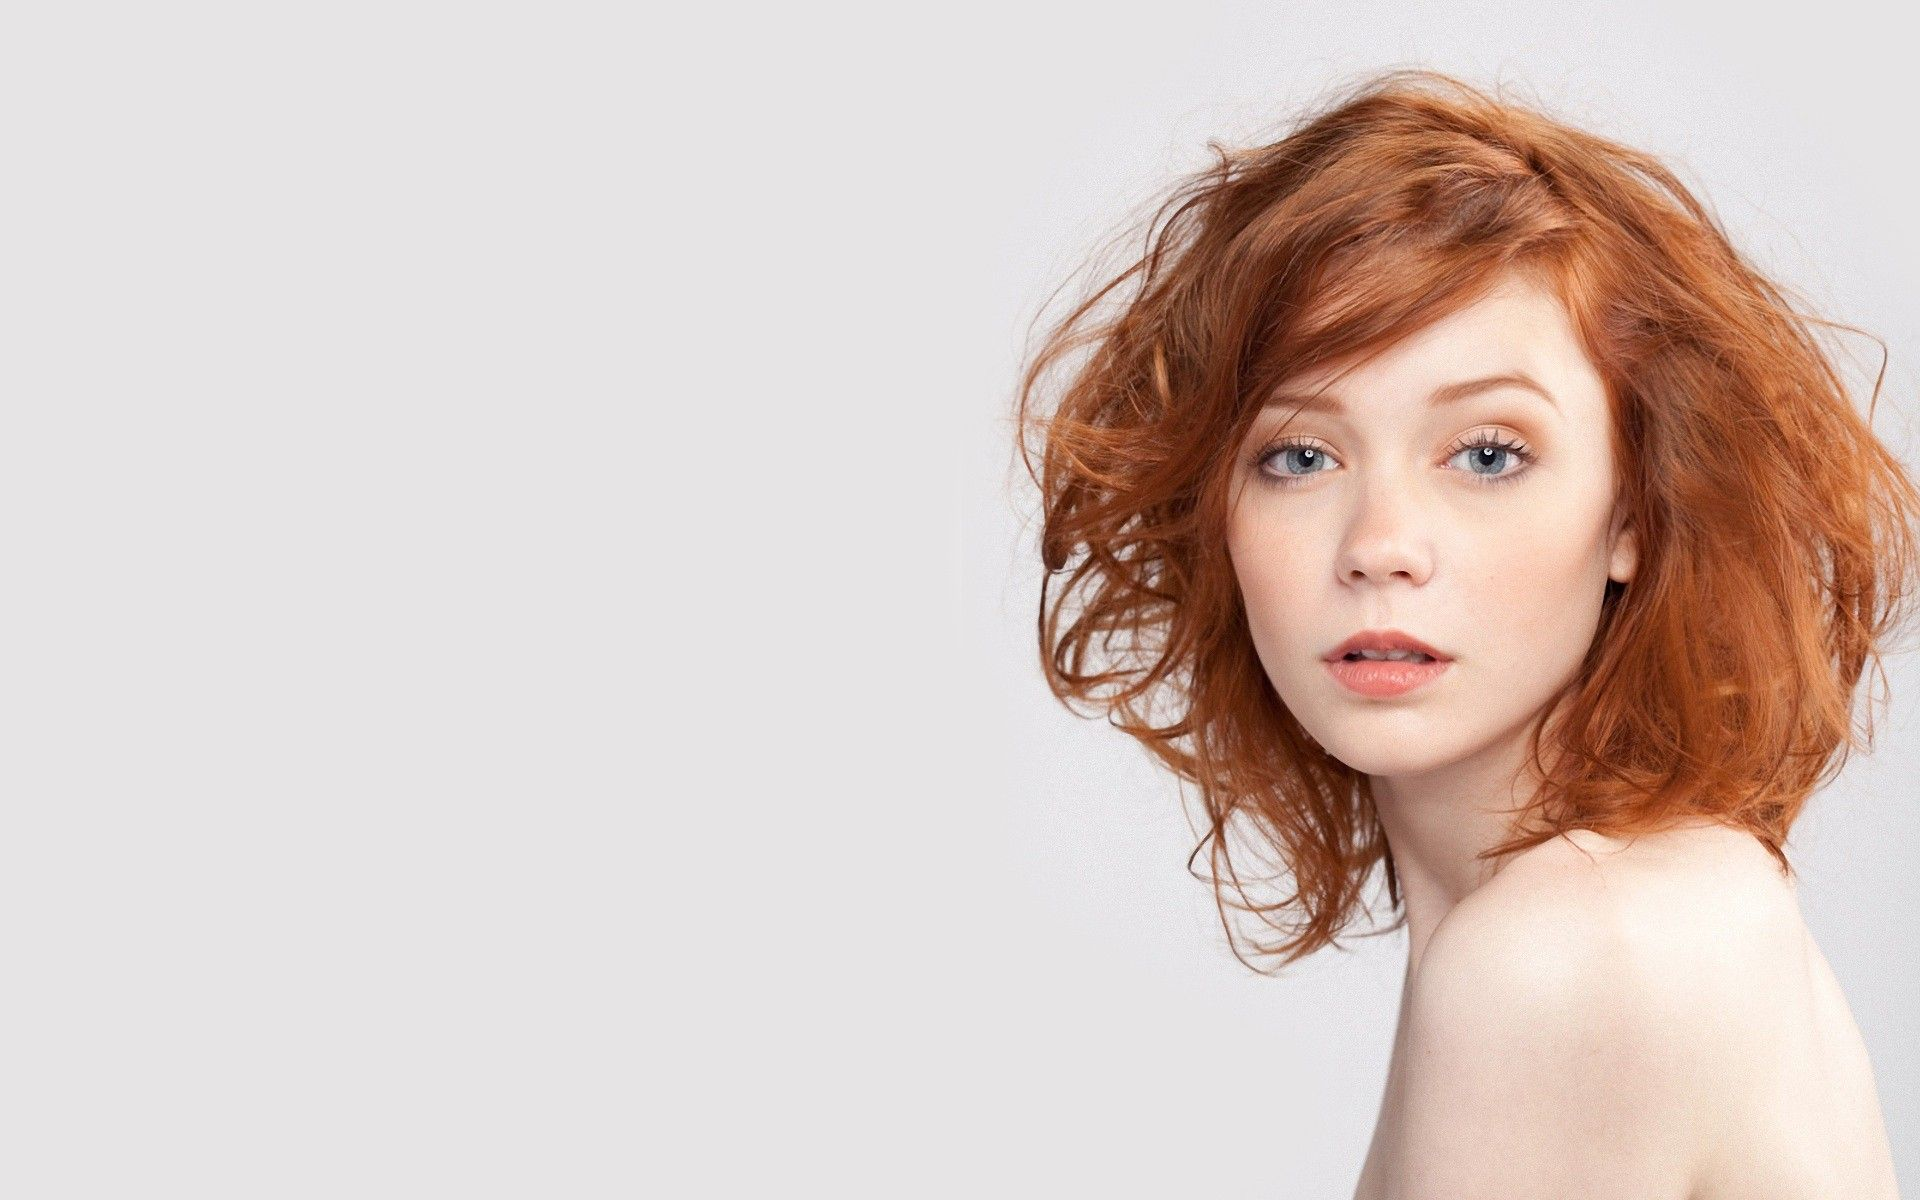 women minimalistic redheads models freckles simple background white ...